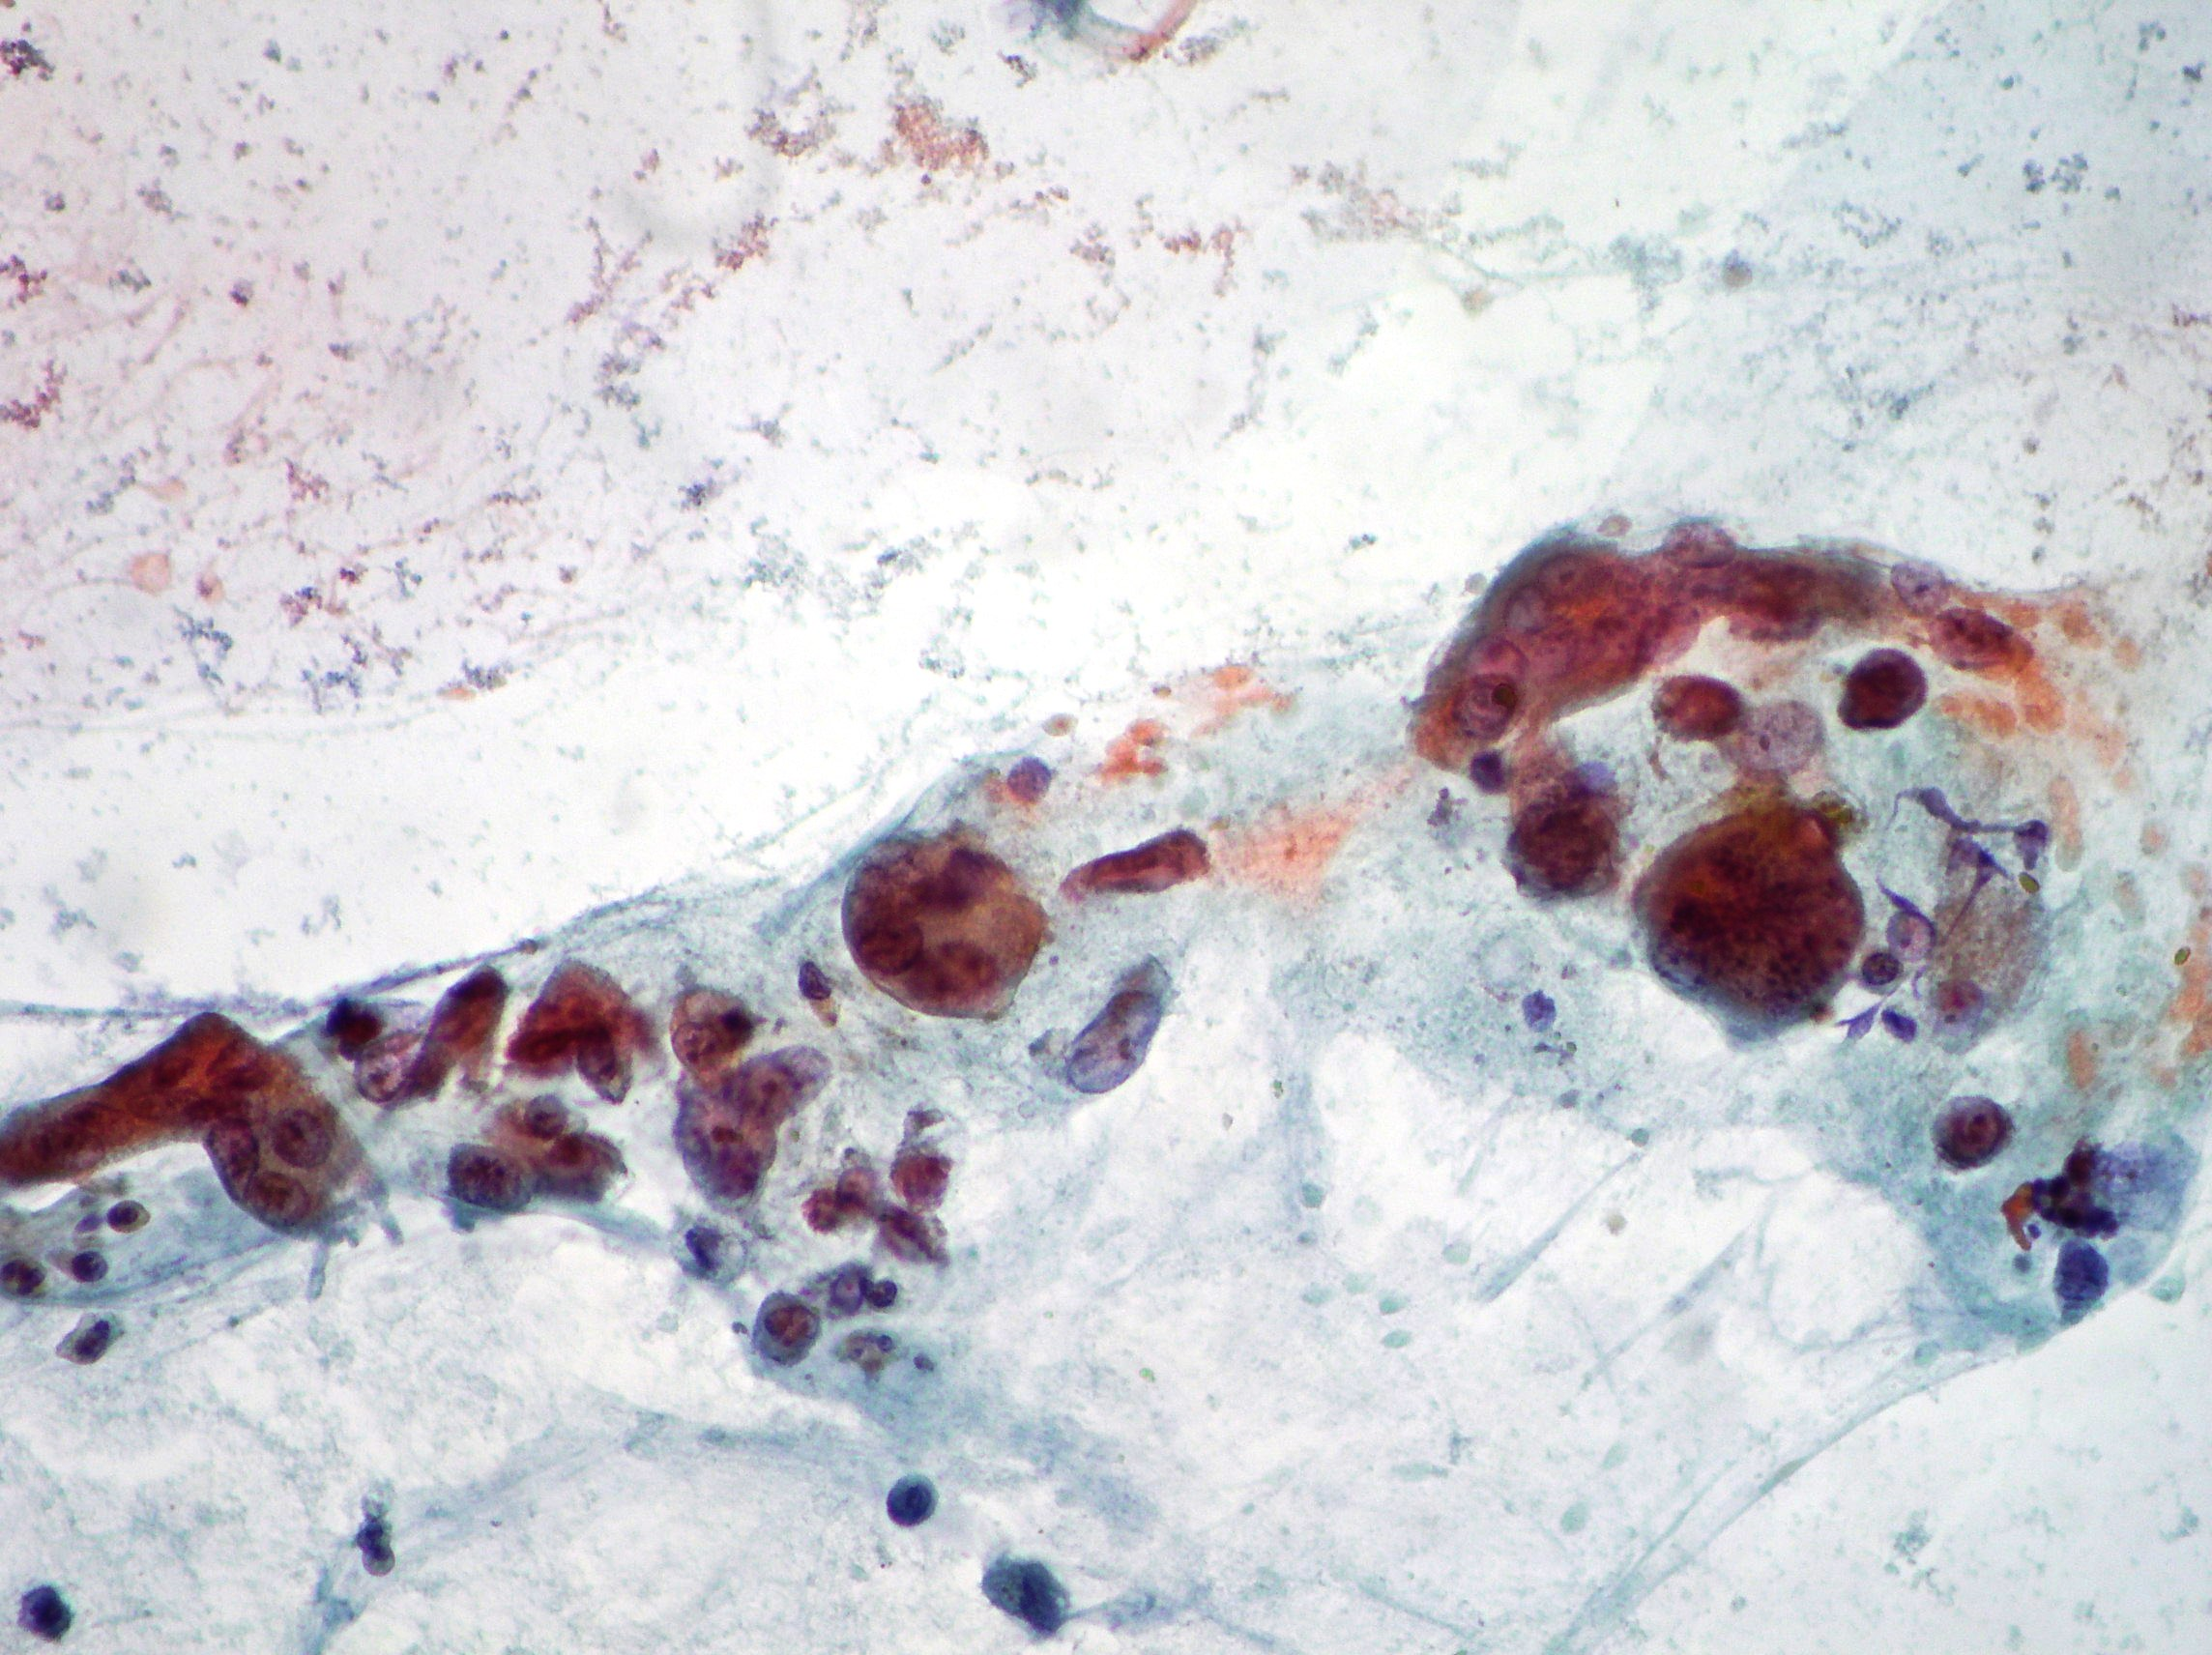 Pancreatic cancer-osteoclastic